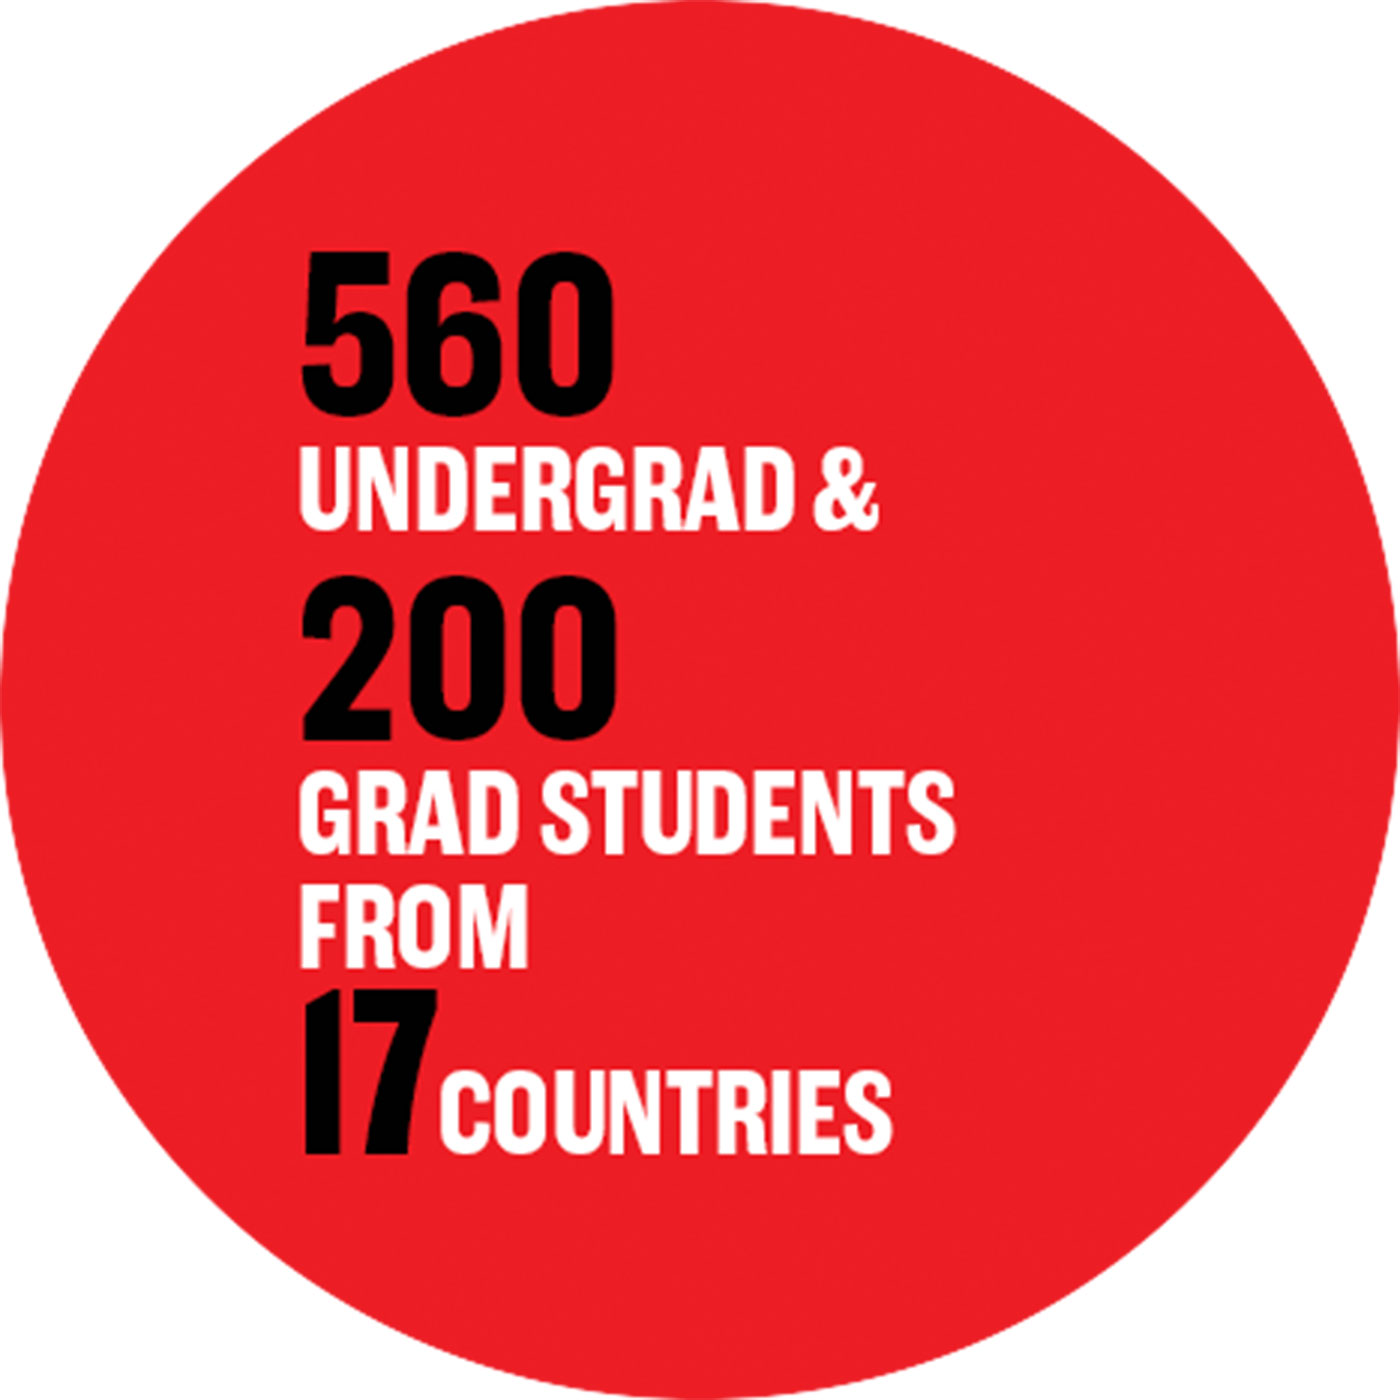 560 undergrad & 200 grad students from 17 countries